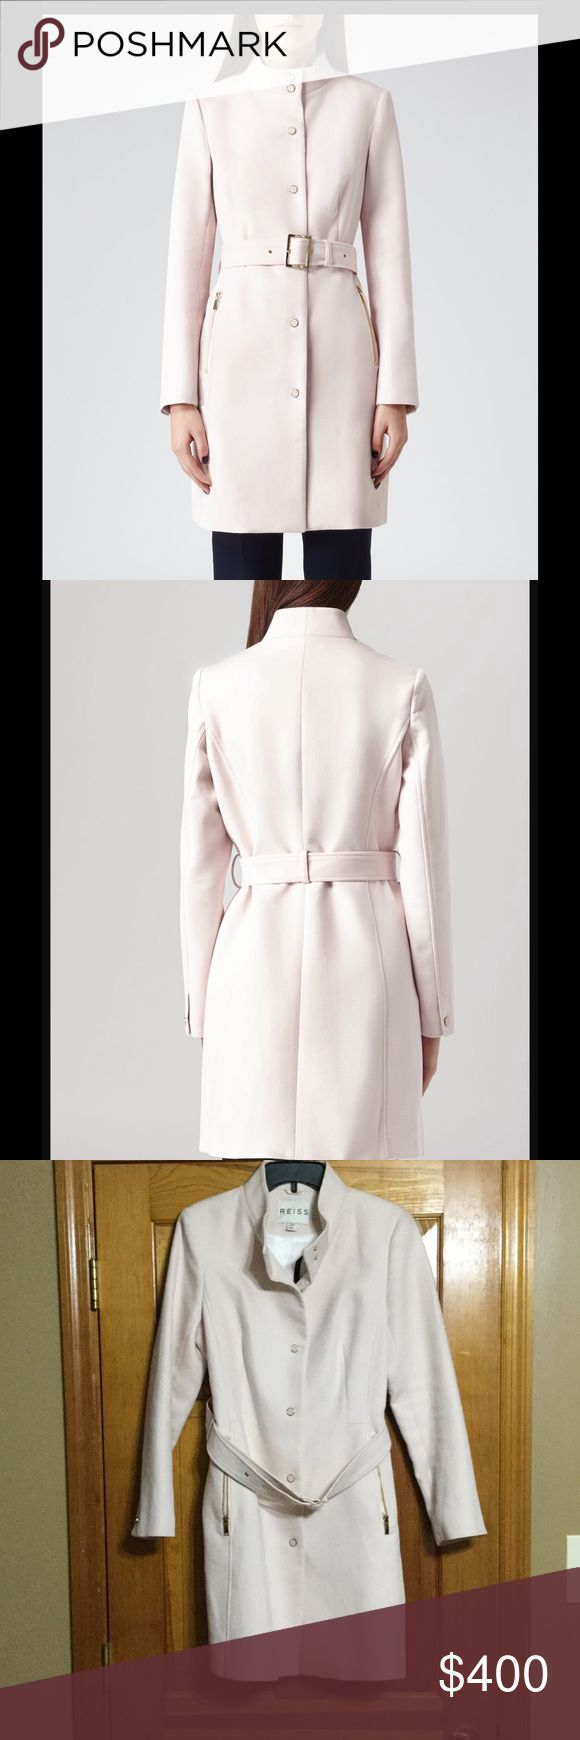 NWT Reiss Margo Trench Coat NWT Margo Trench Coat  Light Pink Color  Size L Beautiful coat. Needs to be dry cleaned. Couple spots from storing I guess. Nothing you can see unless looking for them. Also has a few minor pulls. Could be trimmed and no big deal. Price reflected.  MAKE US AN OFFER!! Reiss Jackets & Coats